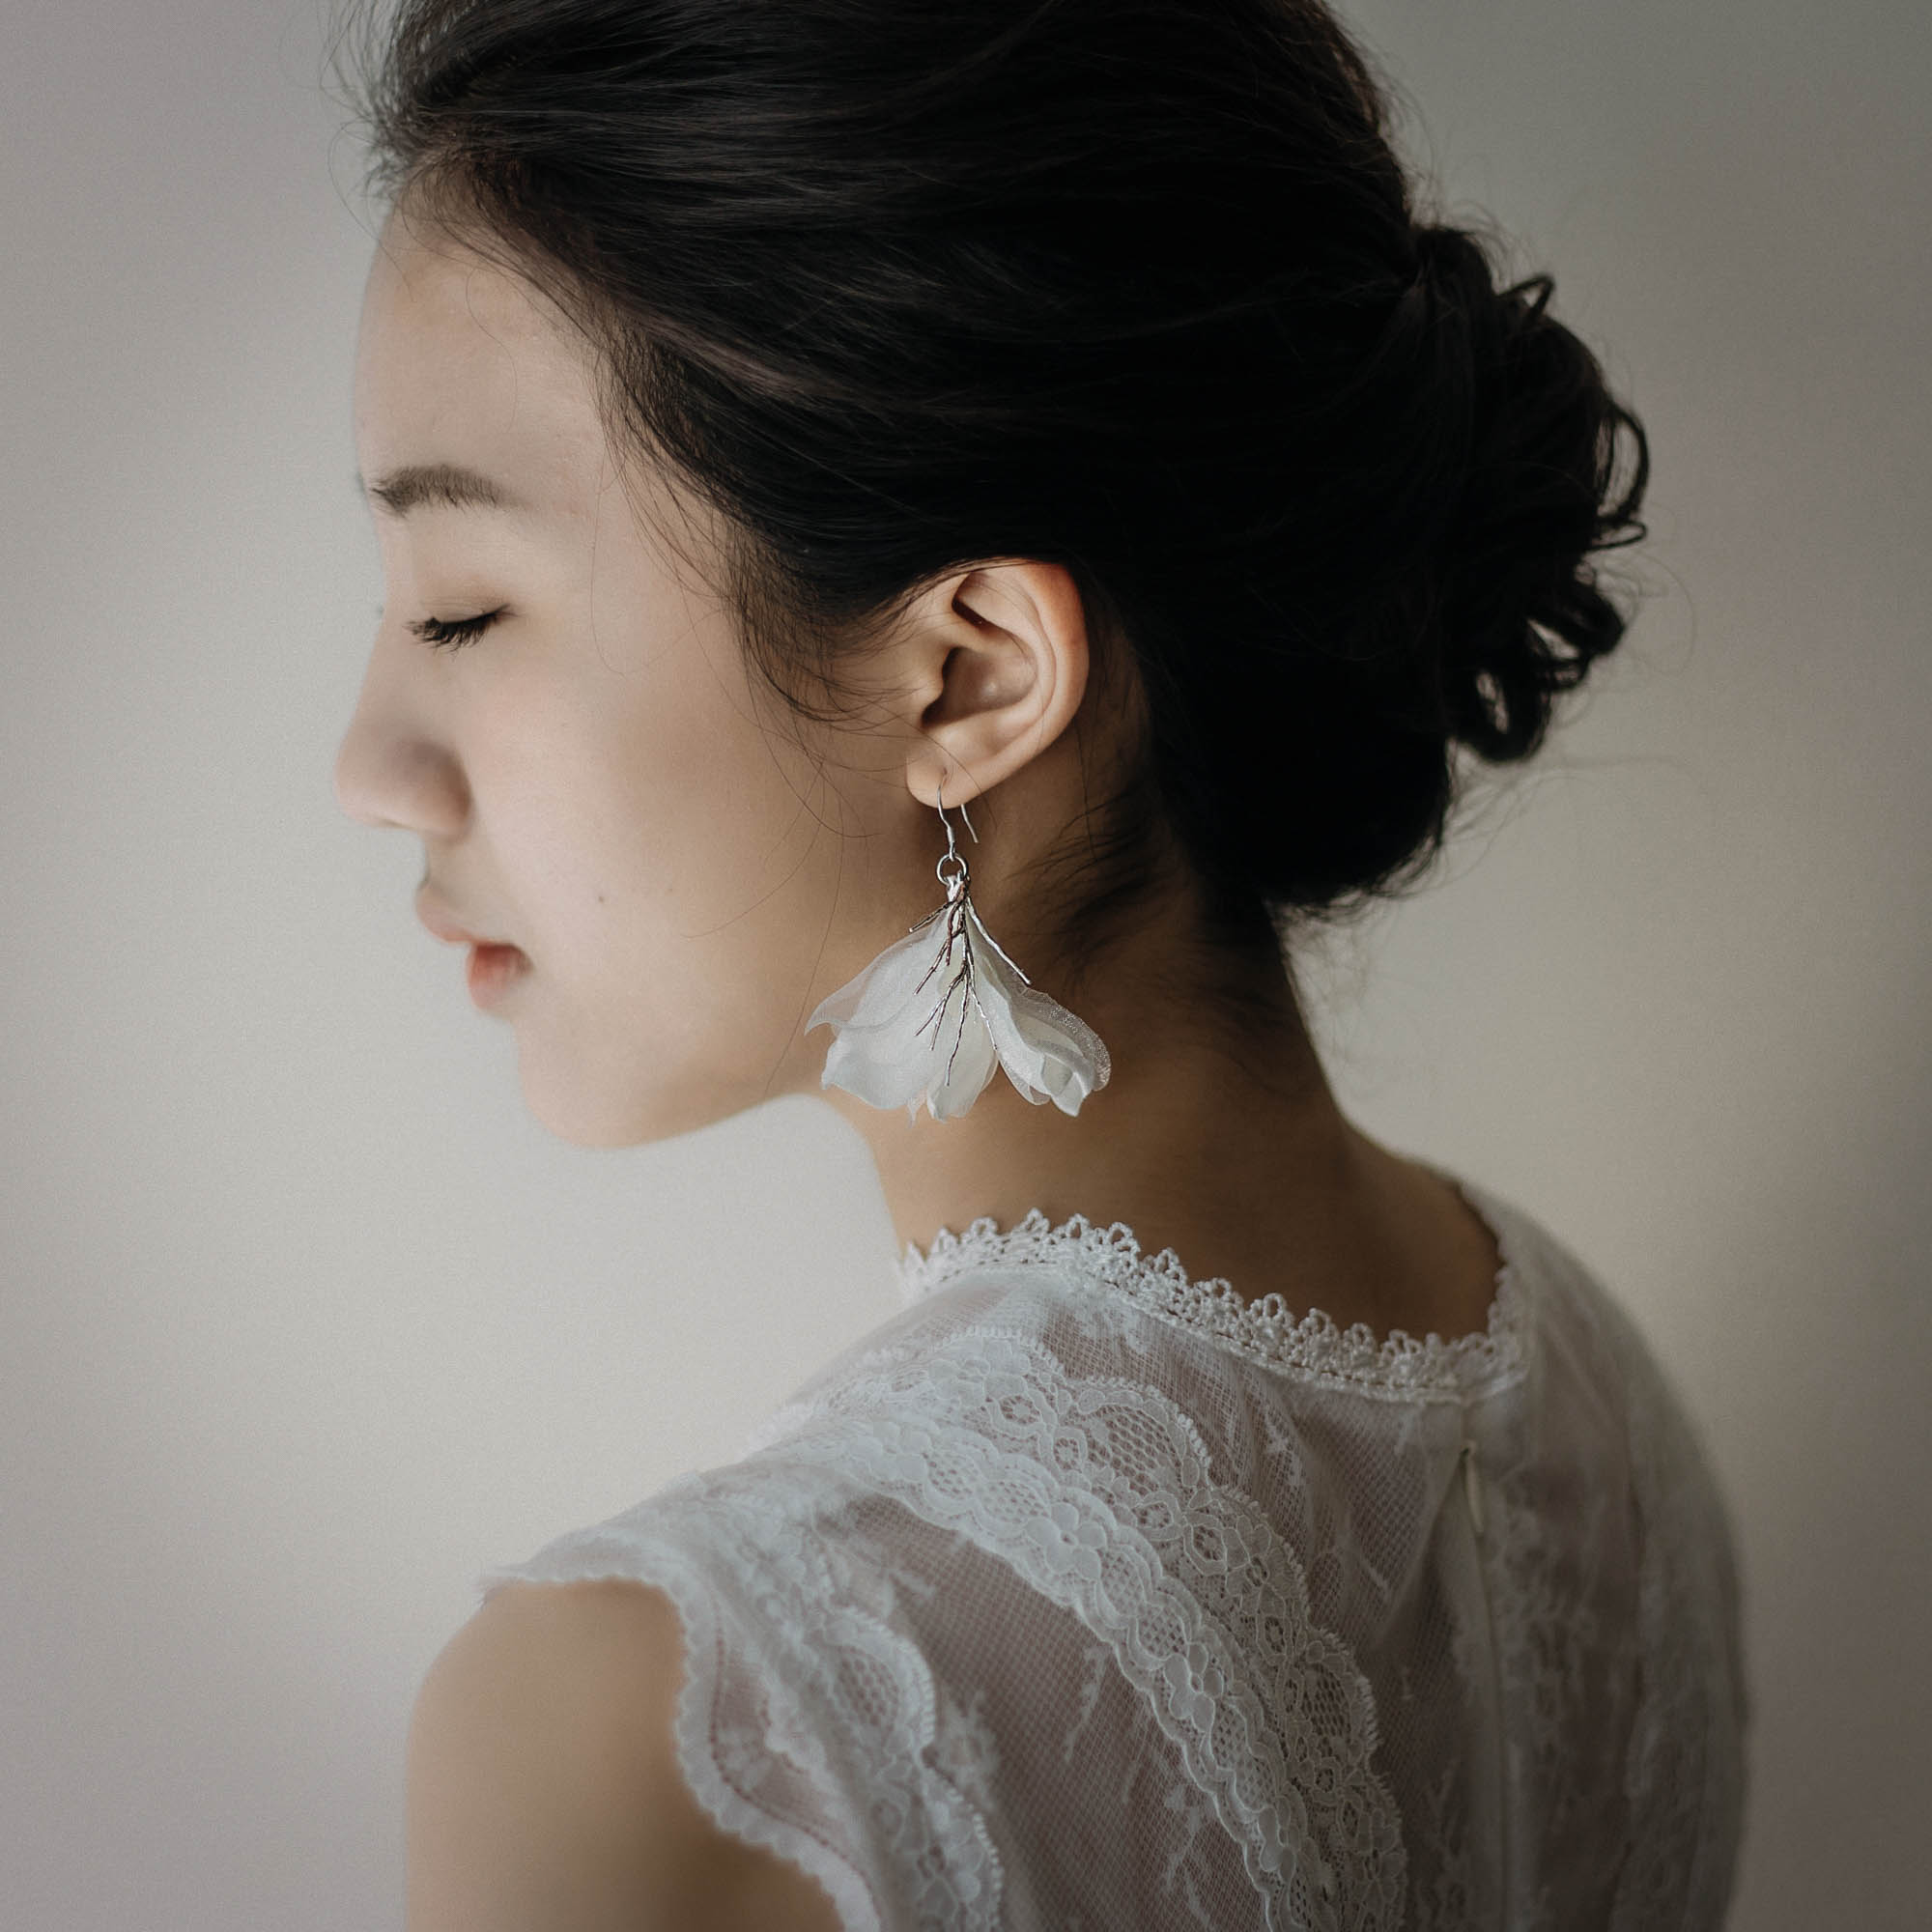 艸化工事 Maison du Corsage | Wedding Accessories